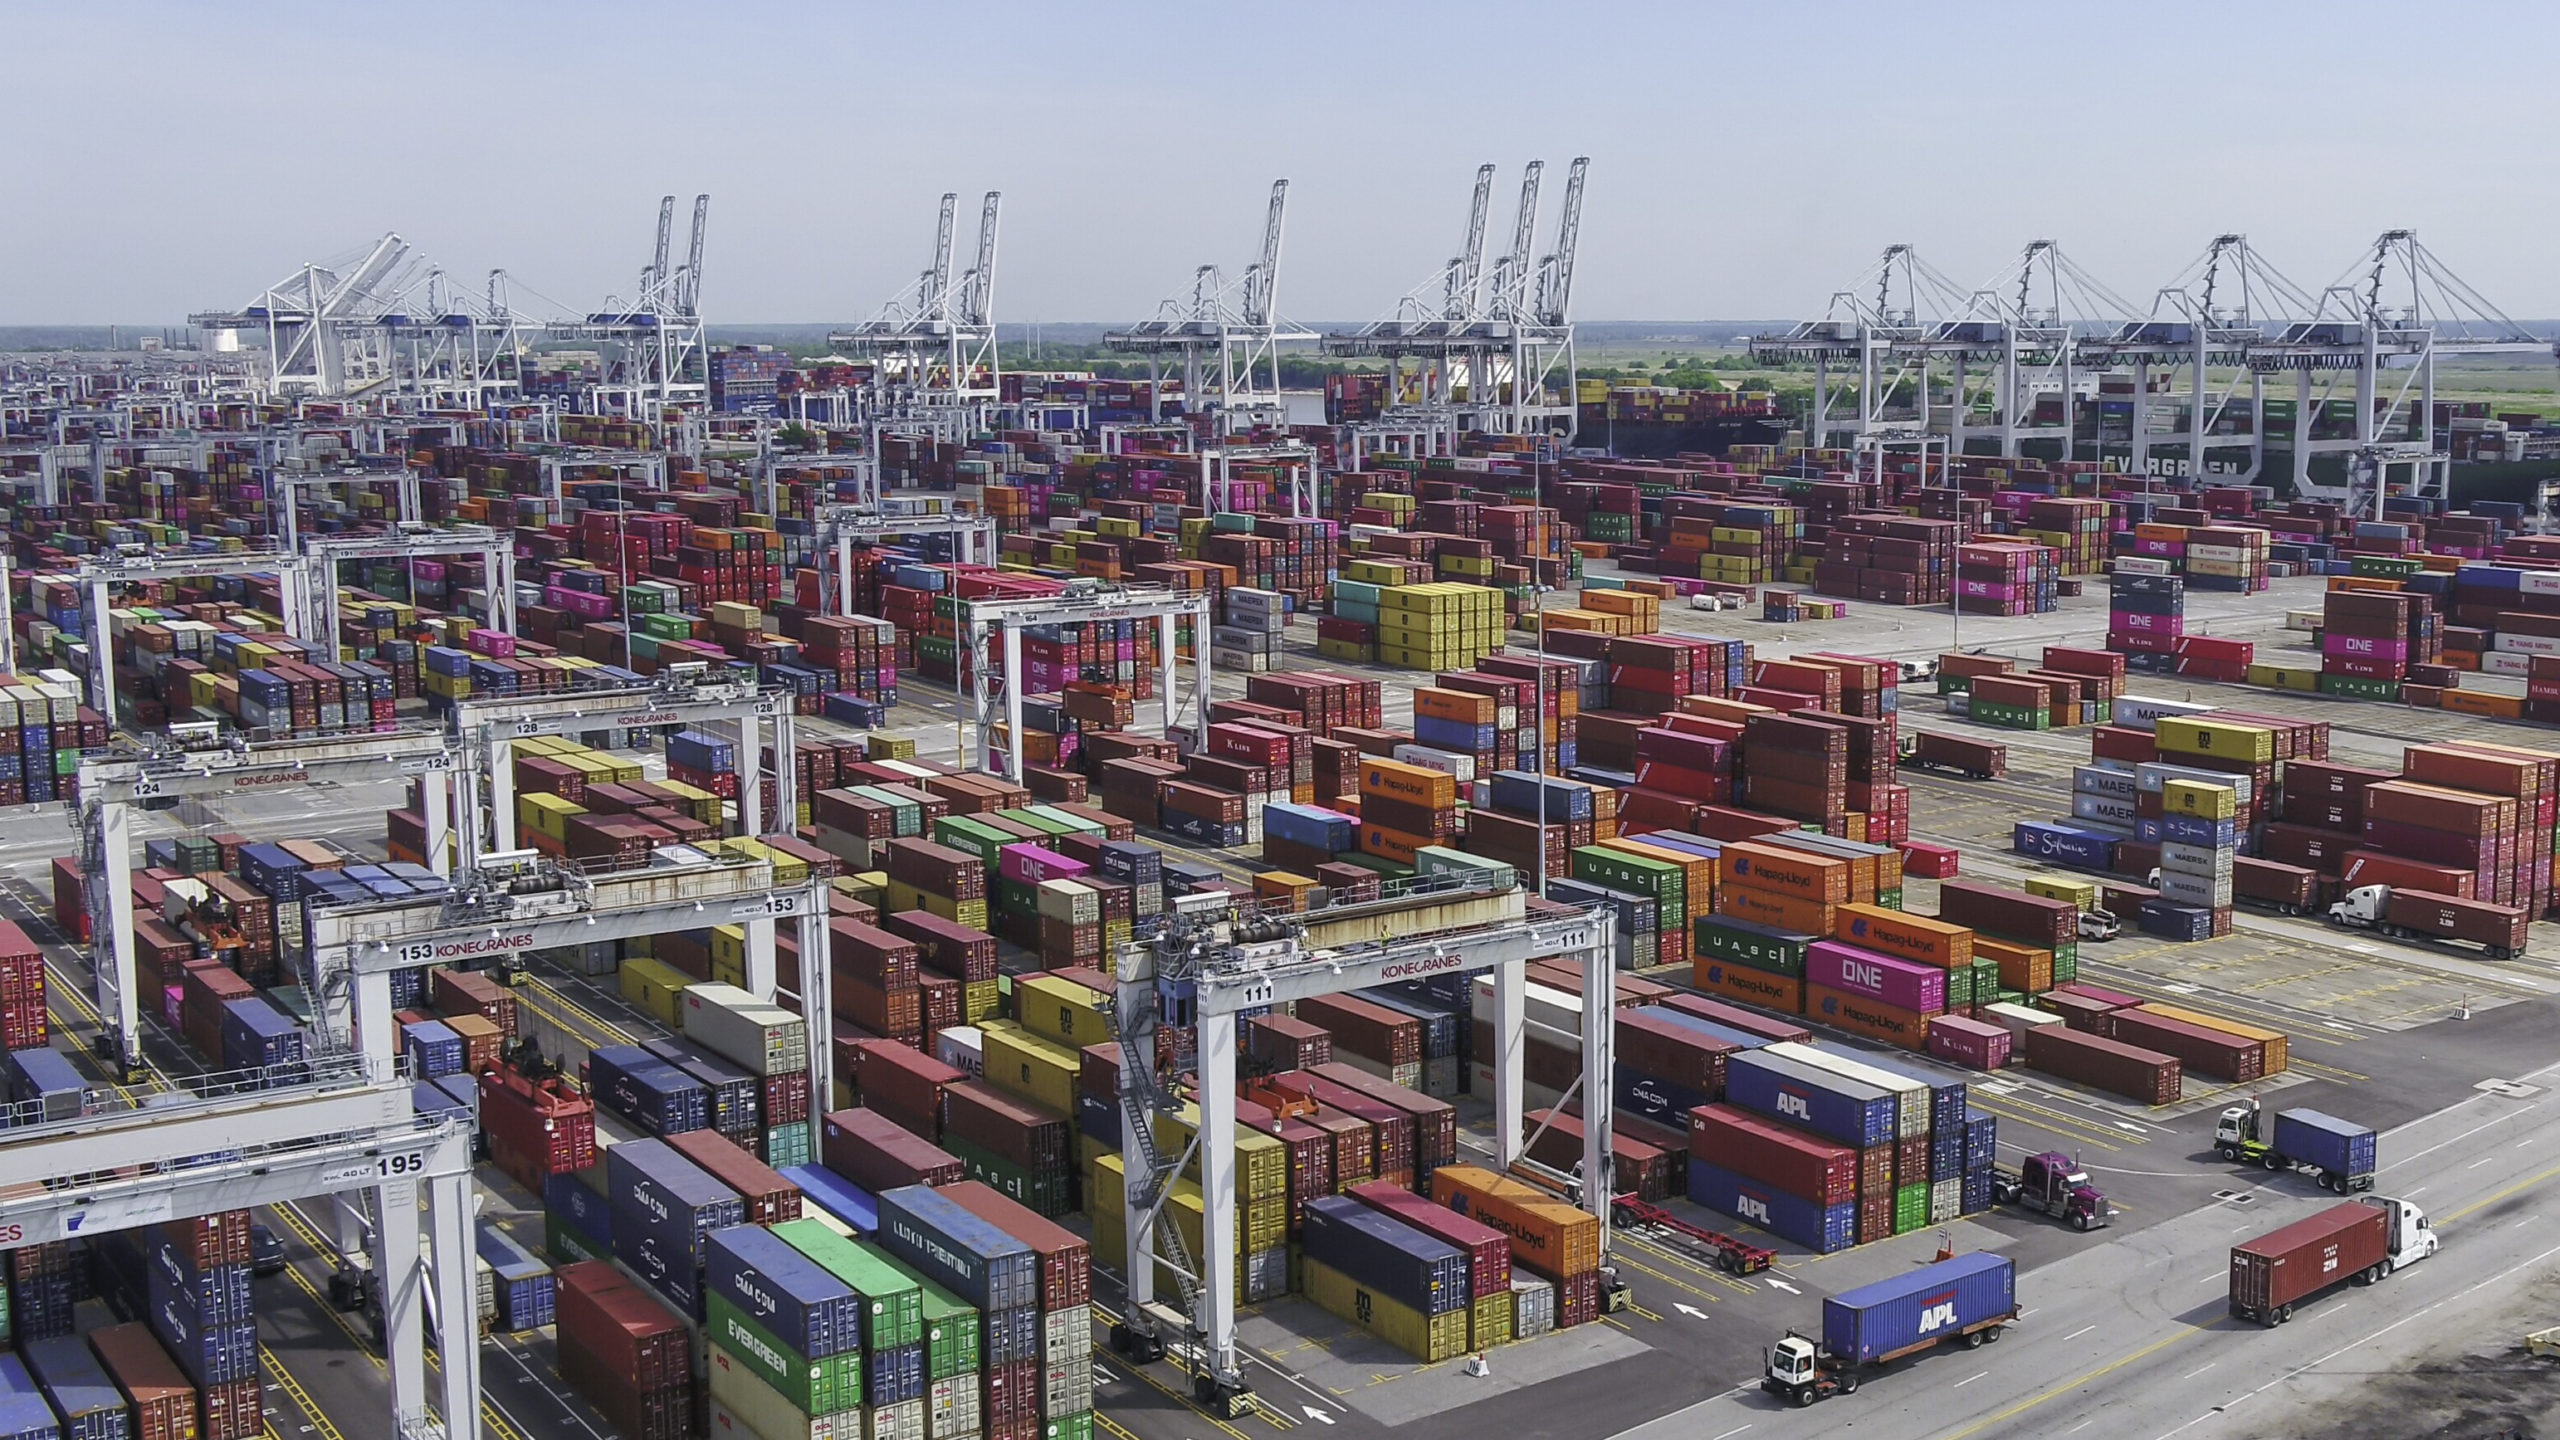 The Port of Savannah is the busiest export port in the US